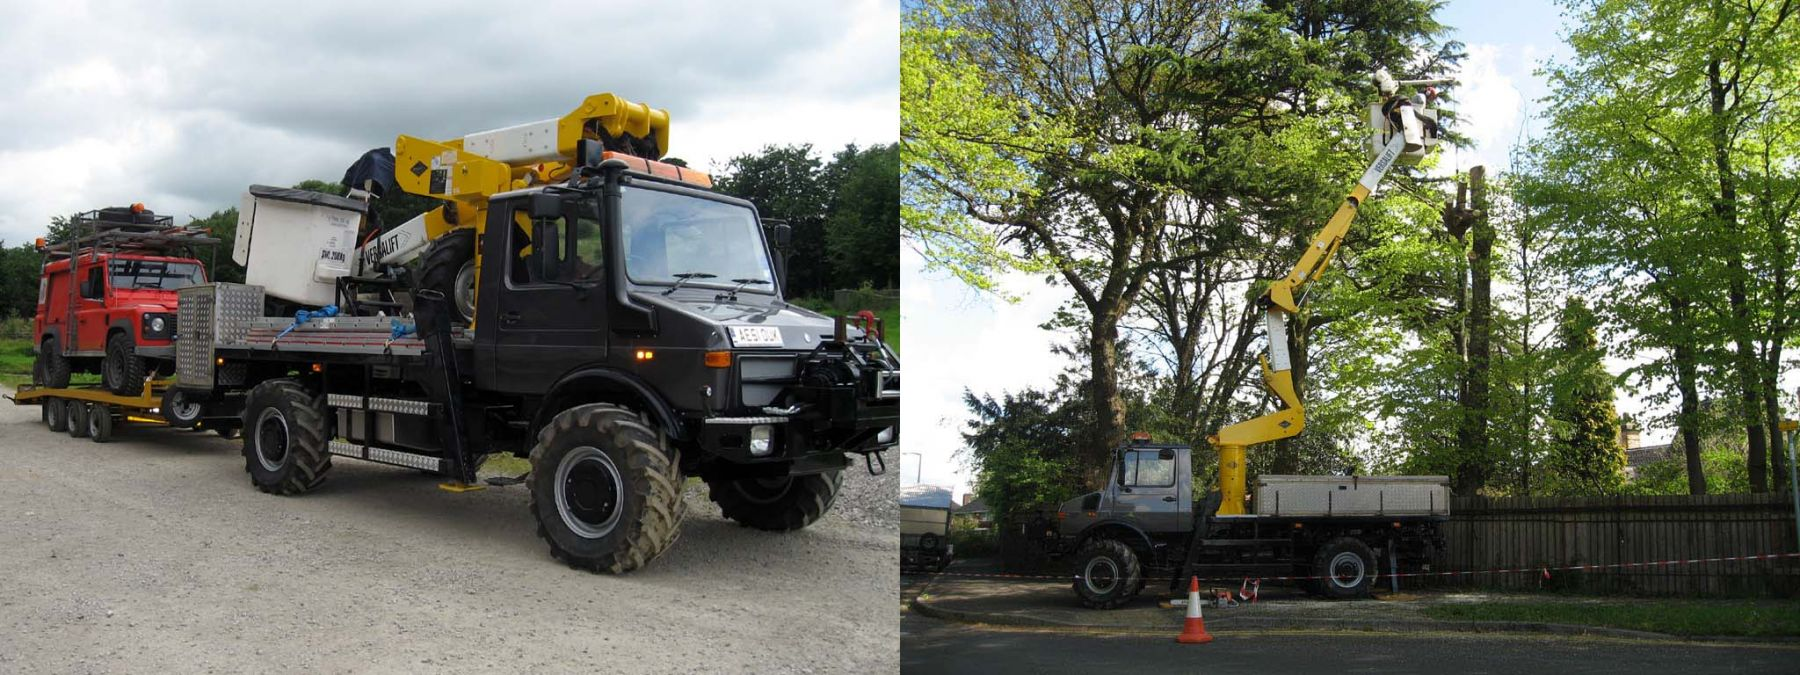 Tree Surgeon Rising High with Access Platform